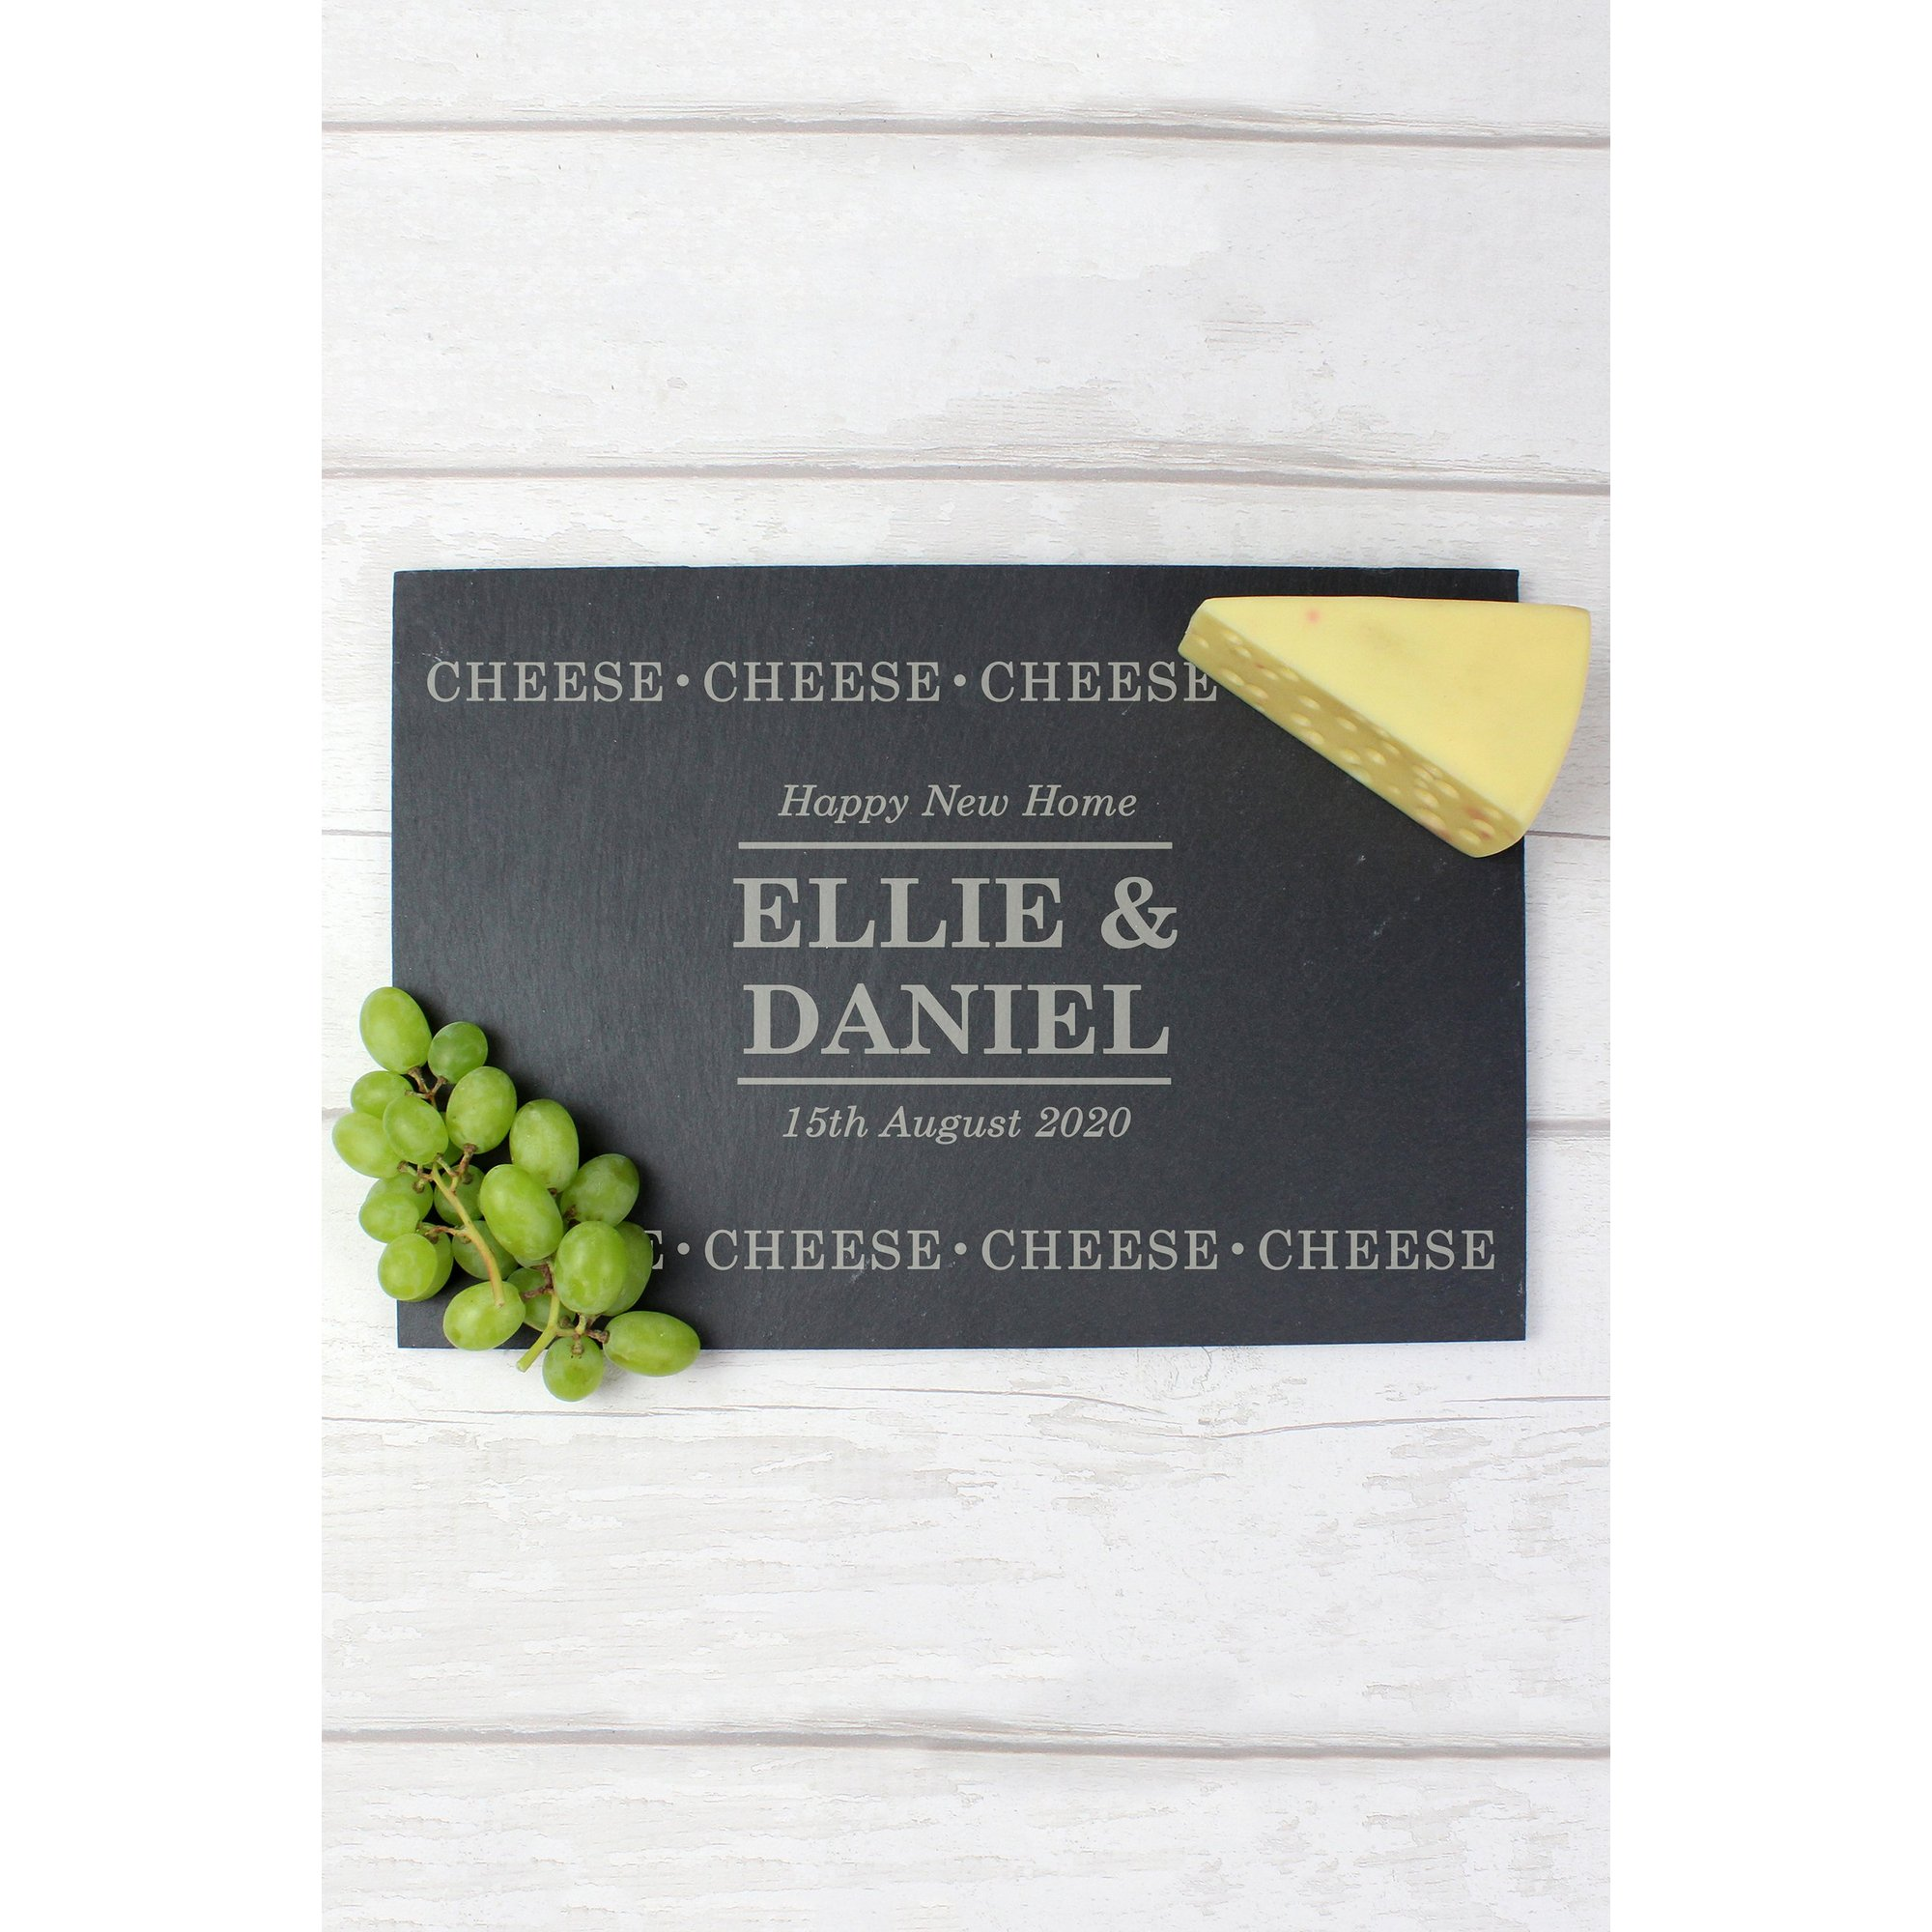 Image of Personalised Cheese Cheese Cheese Slate Cheese Board